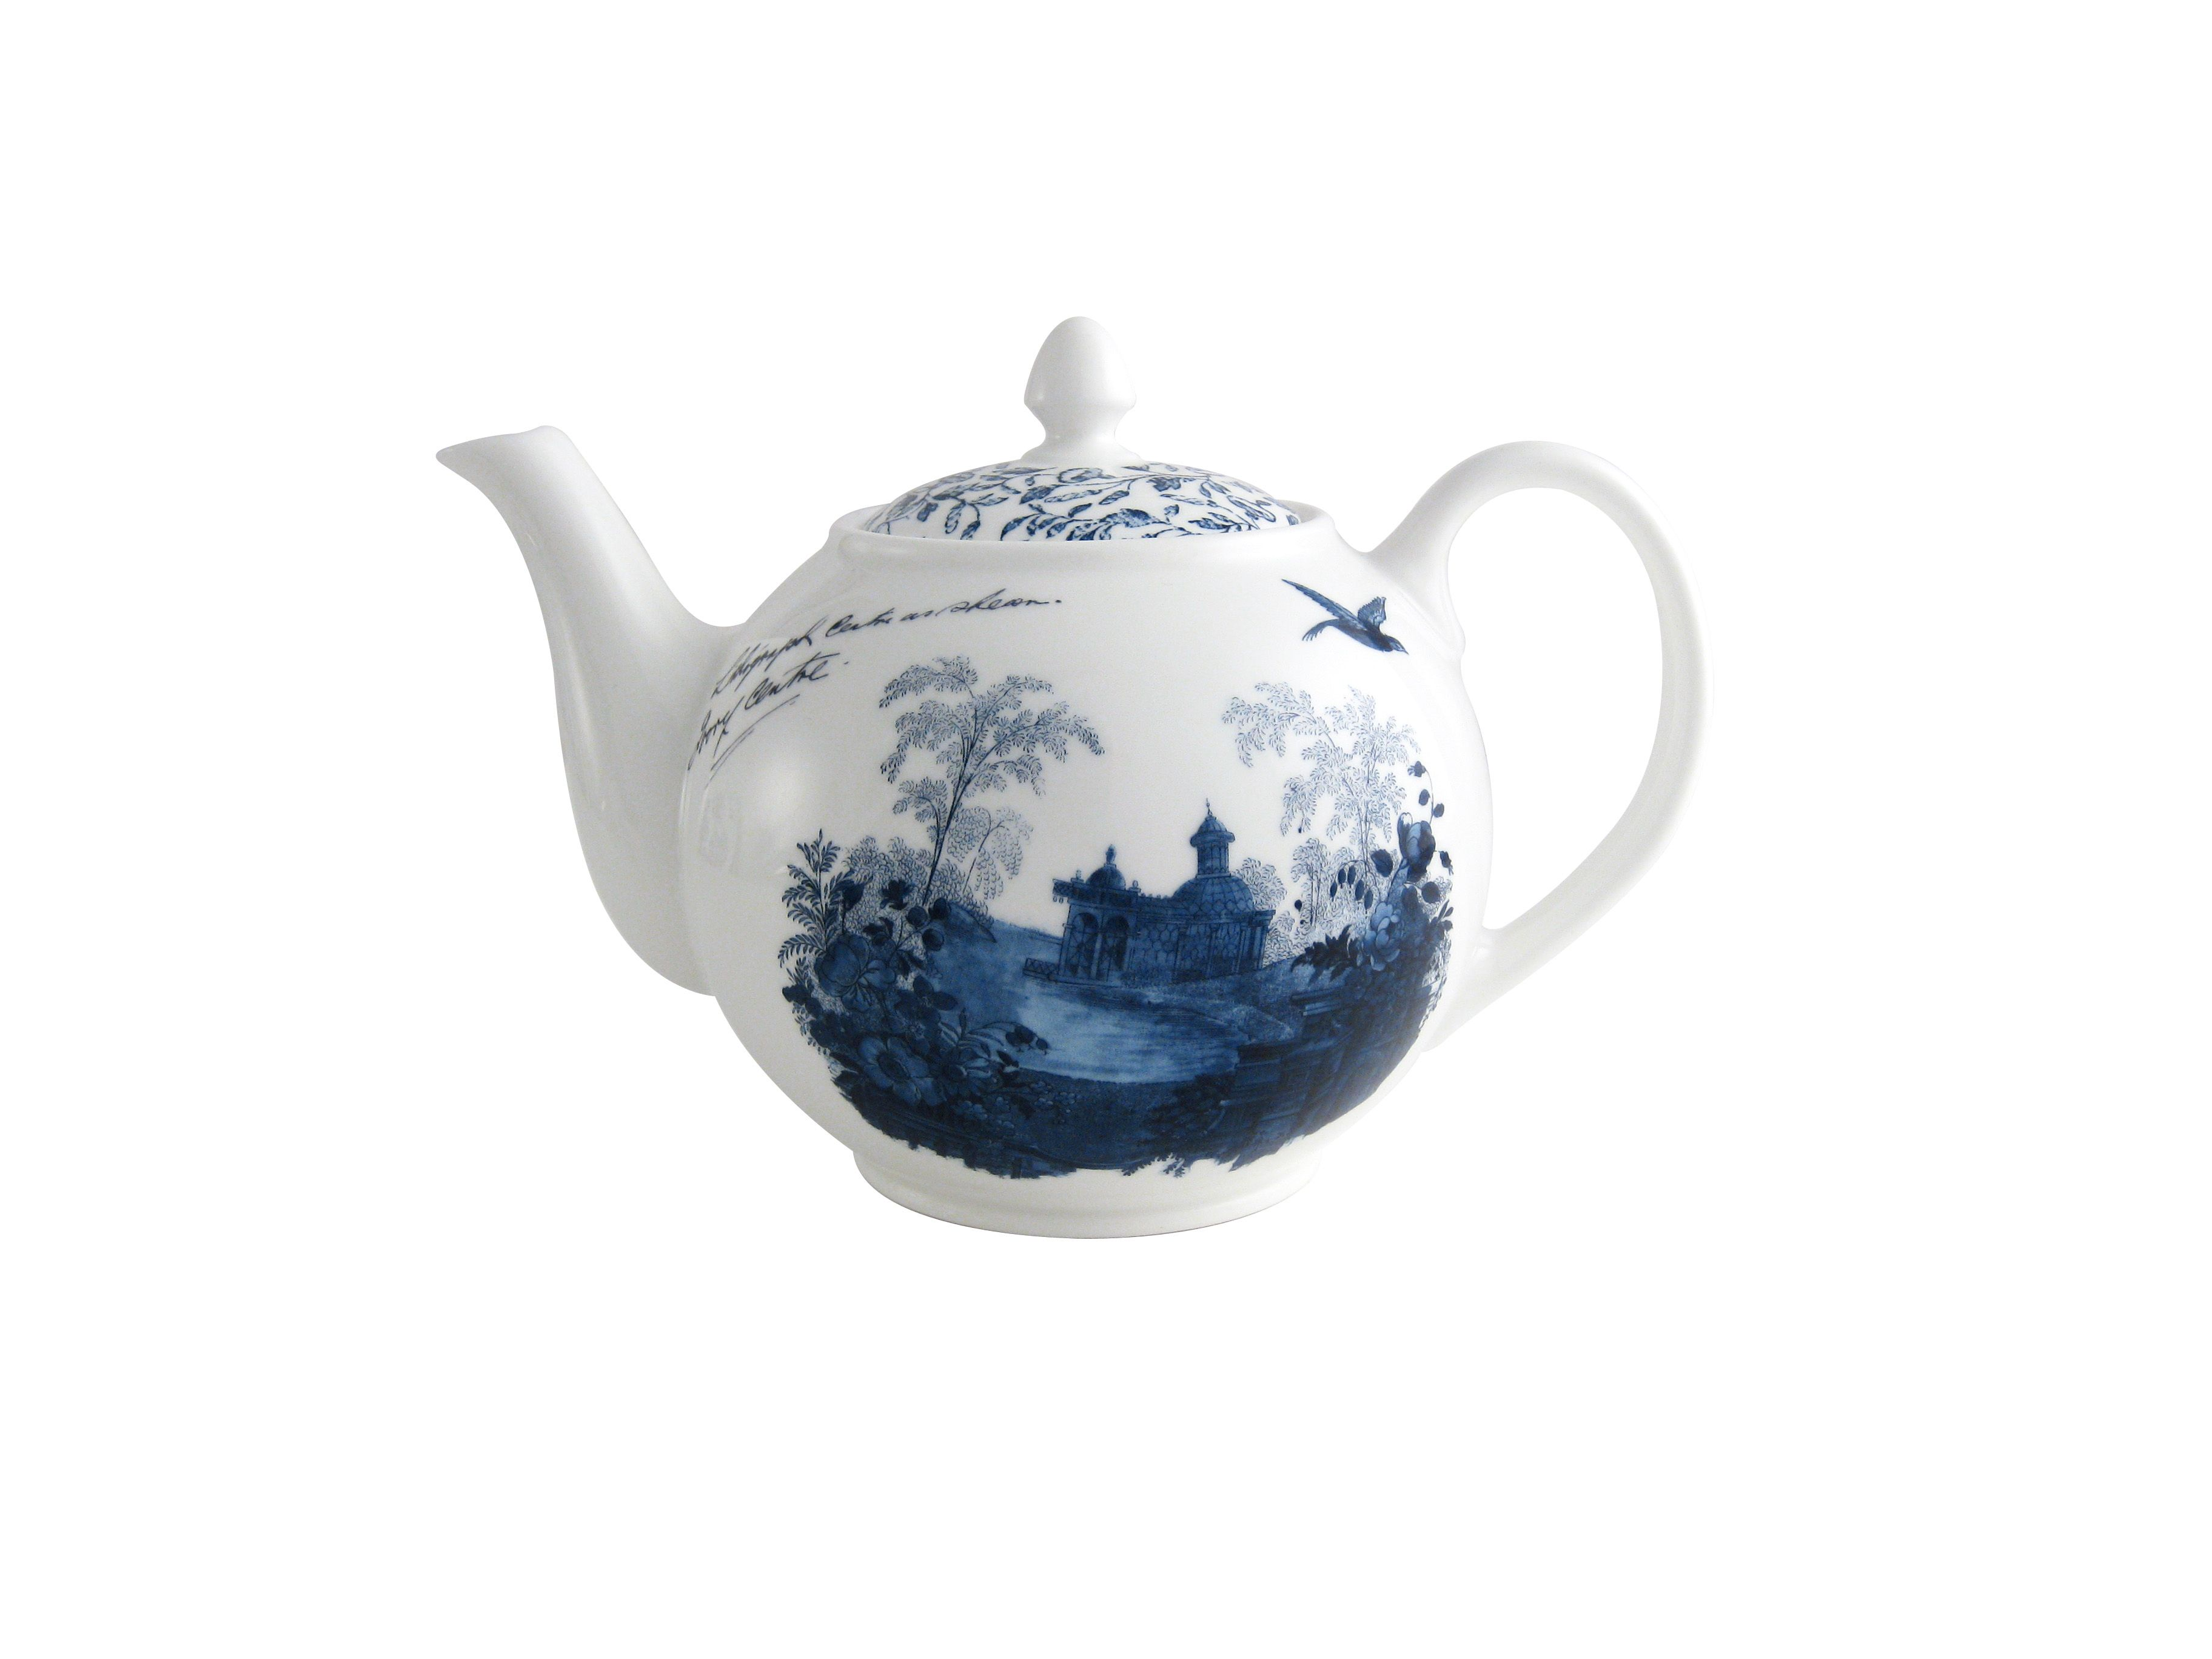 Archive Blue medium teapot